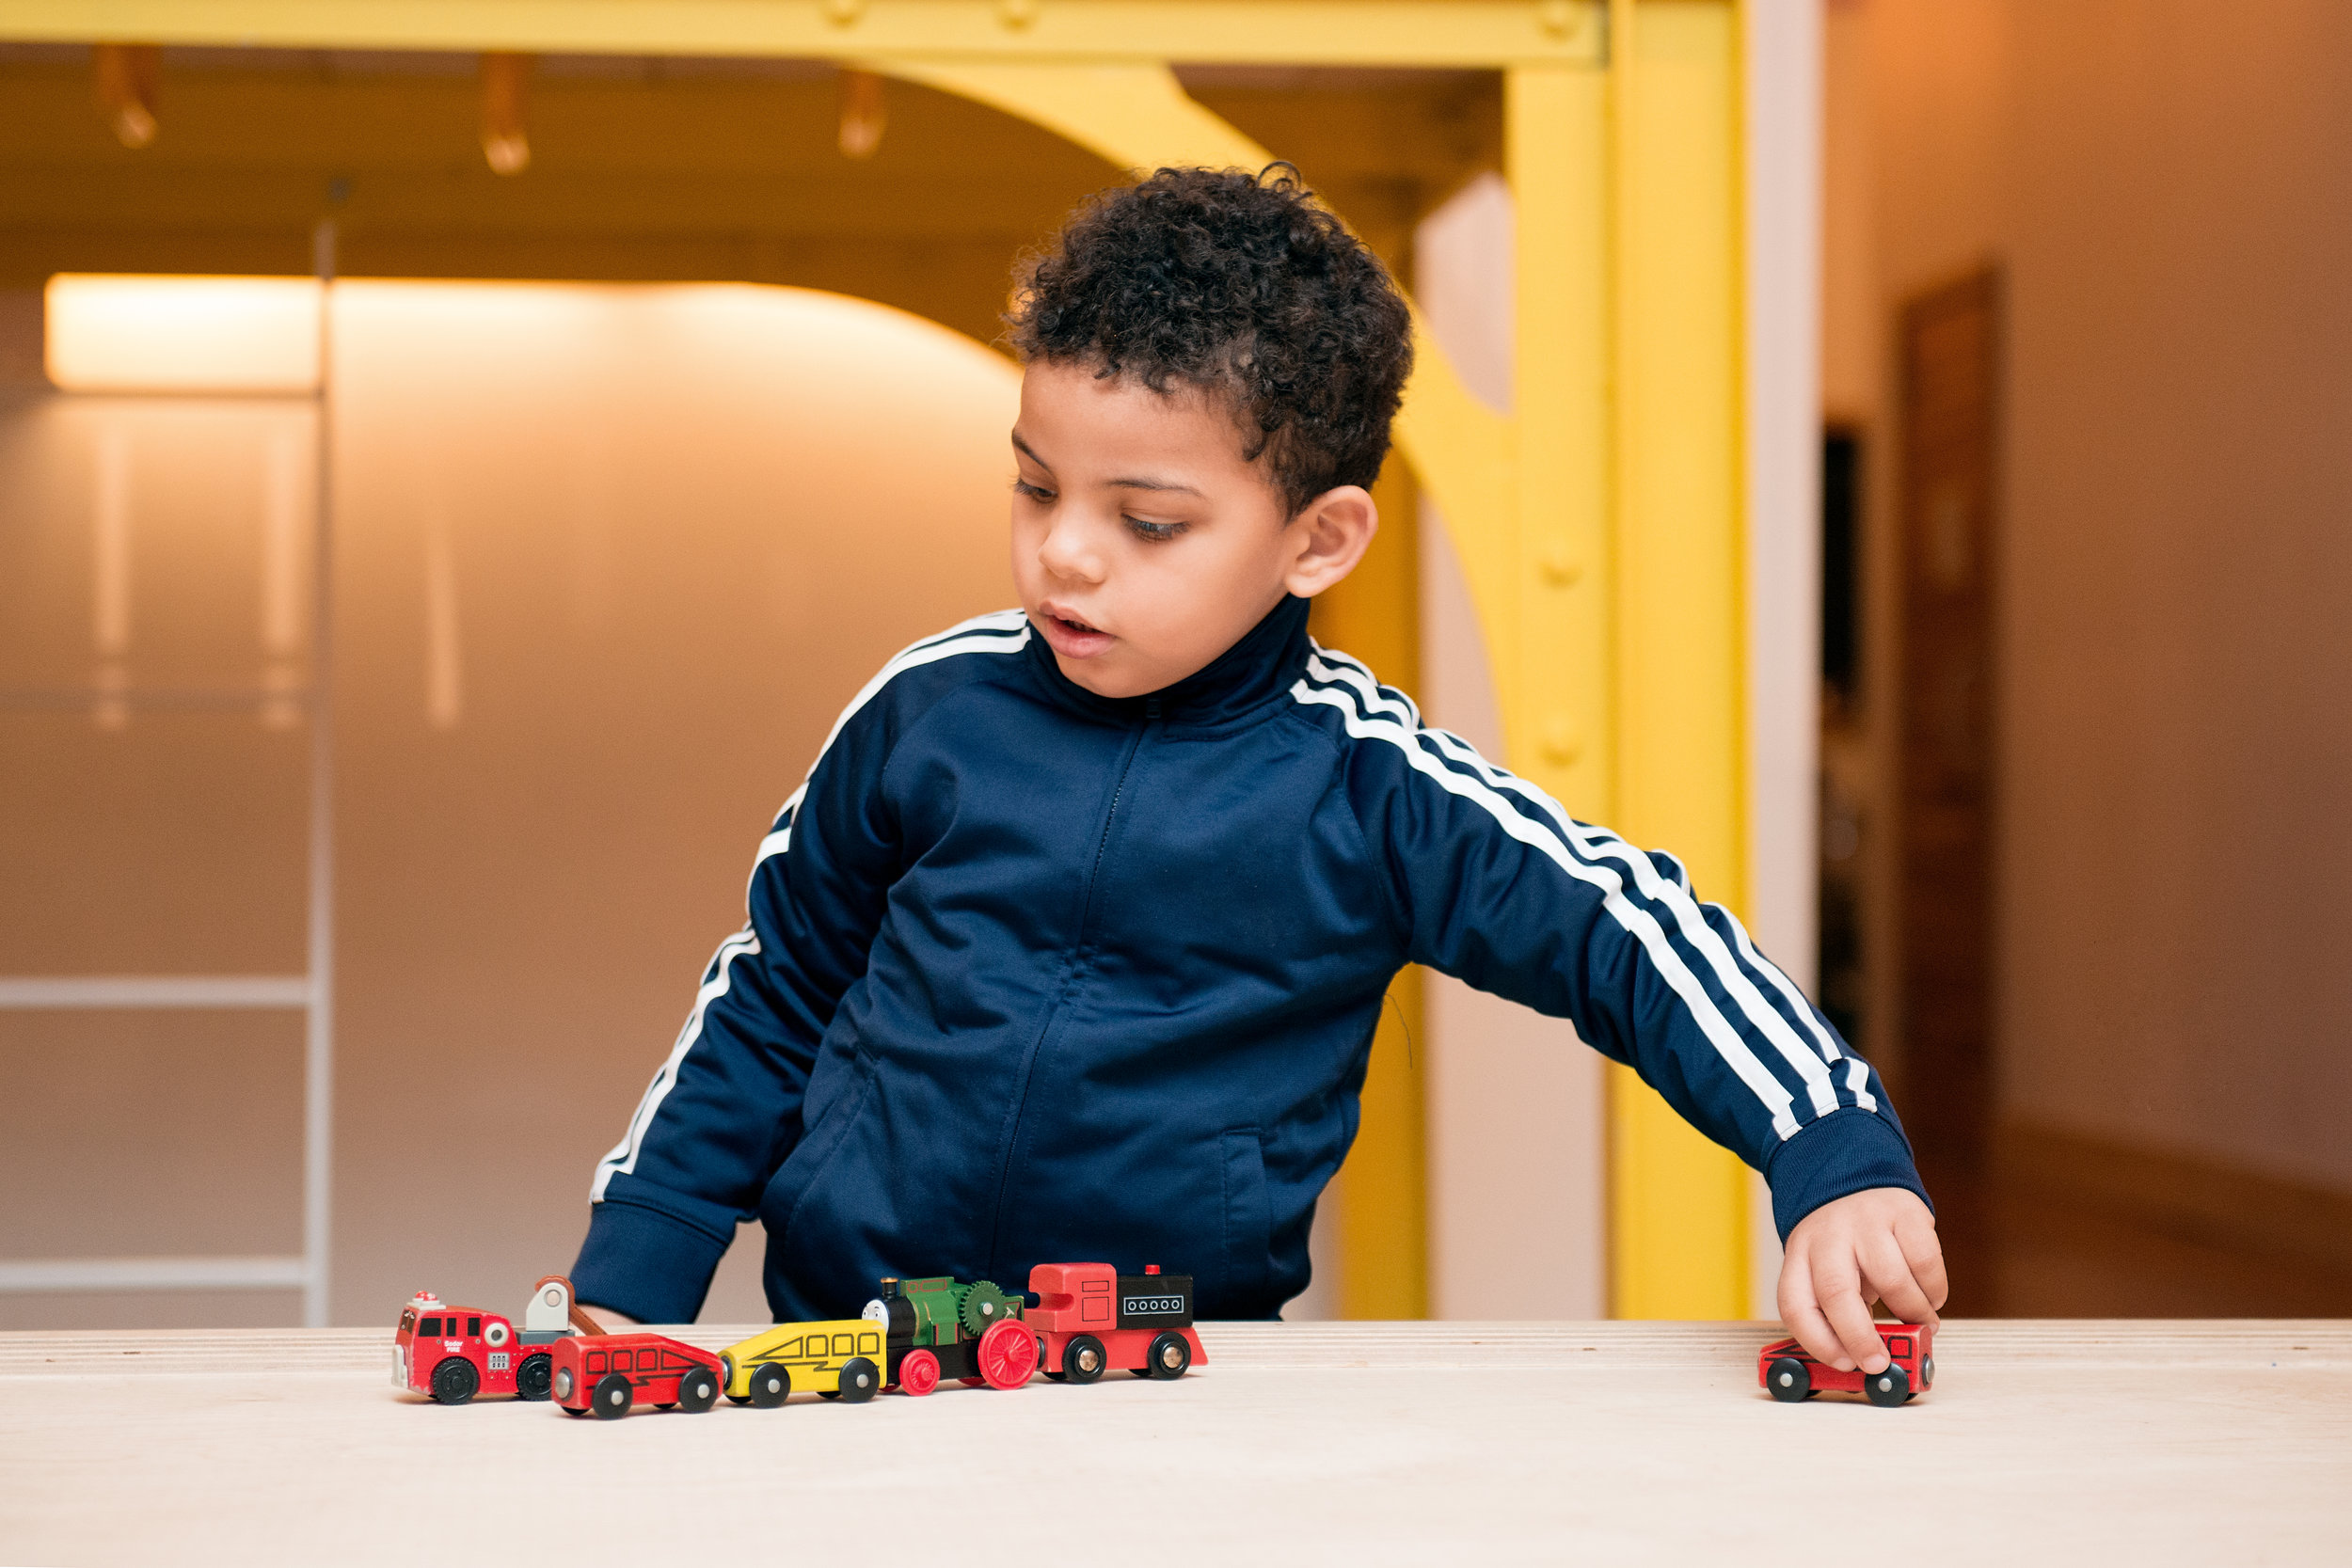 Boy and train toys